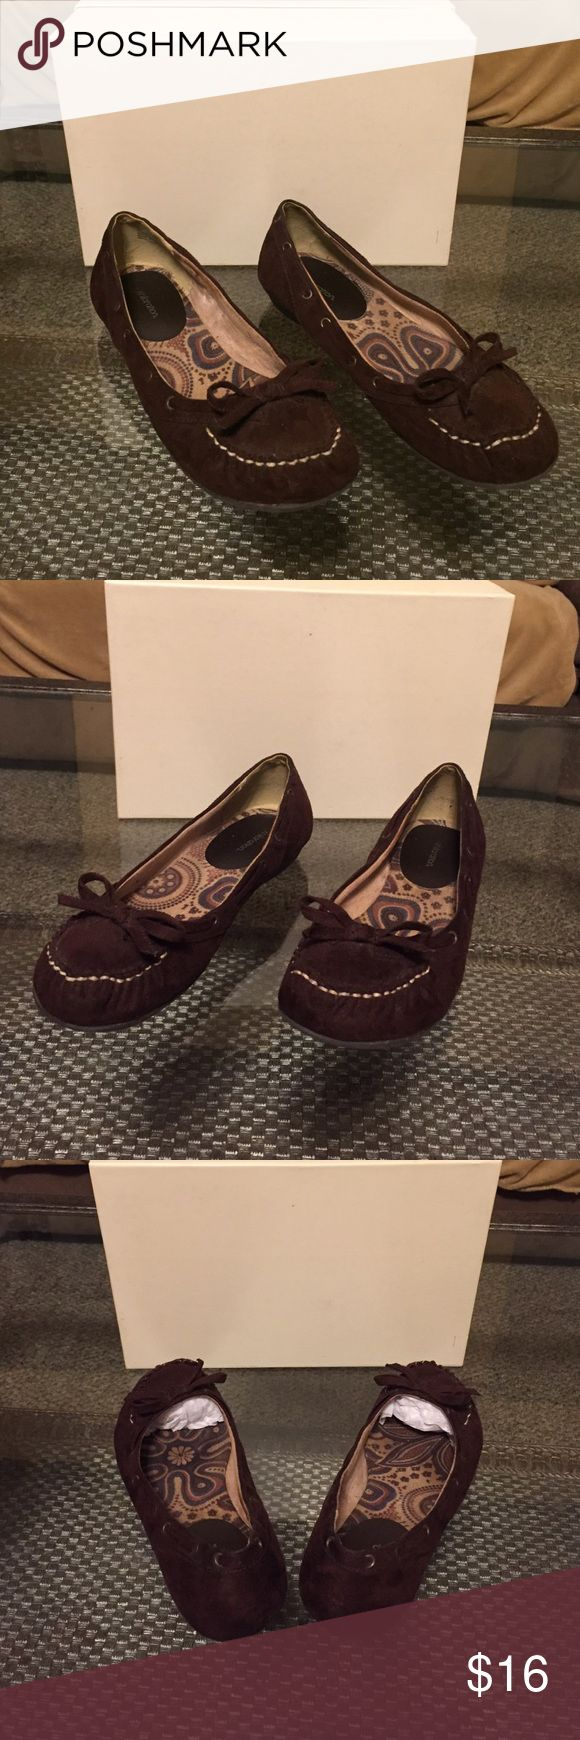 Brown Suede Moccasins Cute and Comfy Moccasins - A Great Companion for any Casual Outfit; Wear with Jeans, Capris, Shorts, Dresses or Skirts! ☺️👍 Other